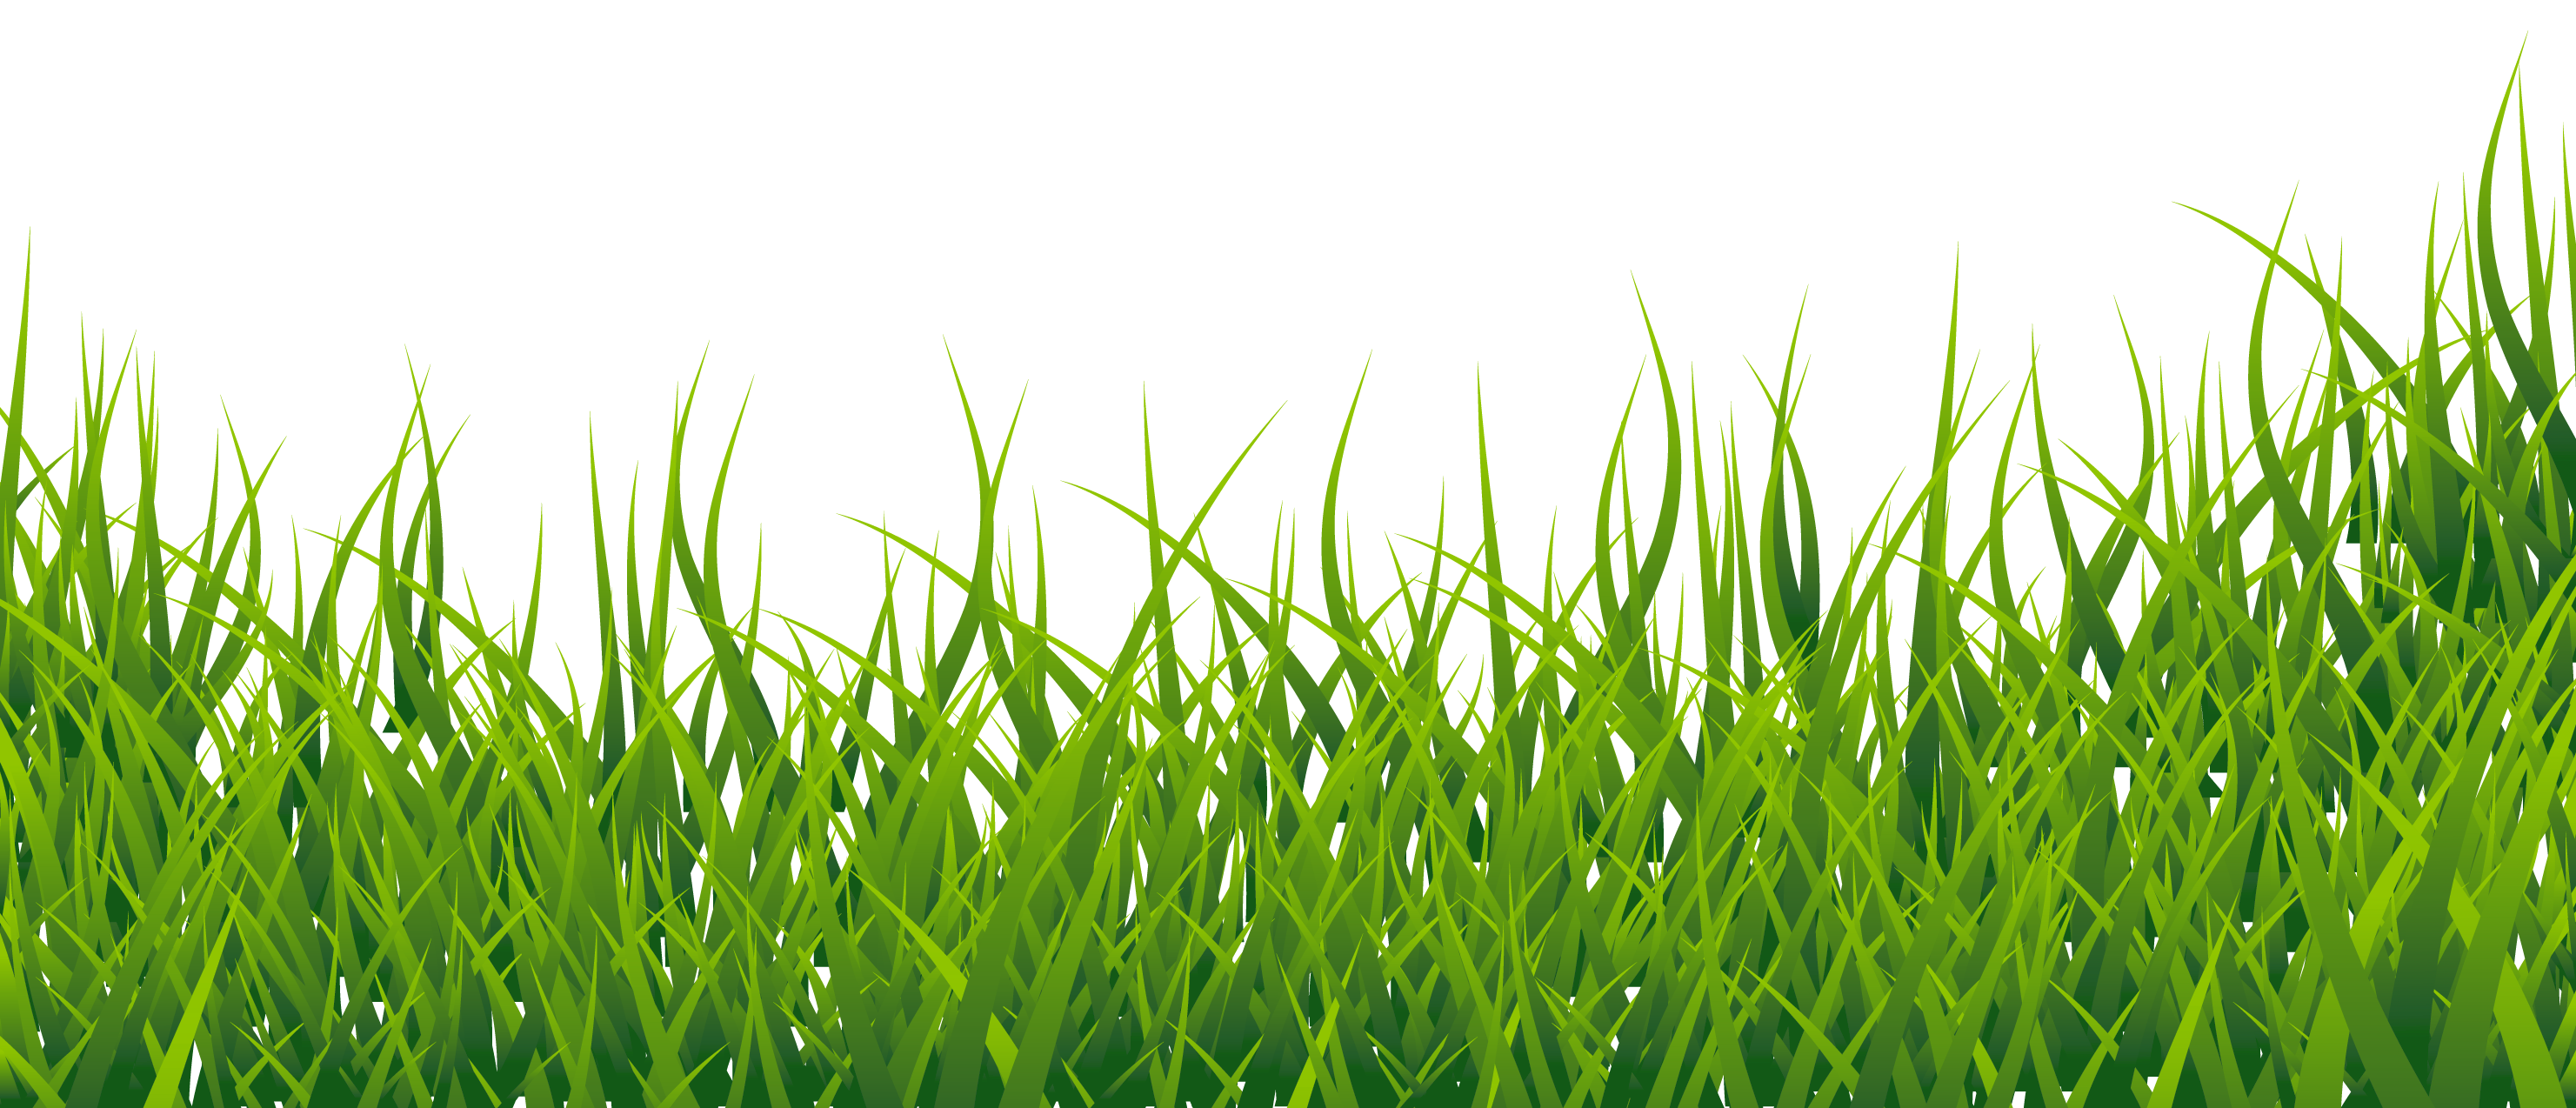 Grass images clipart jpg transparent download Free Grass Cliparts, Download Free Clip Art, Free Clip Art on ... jpg transparent download